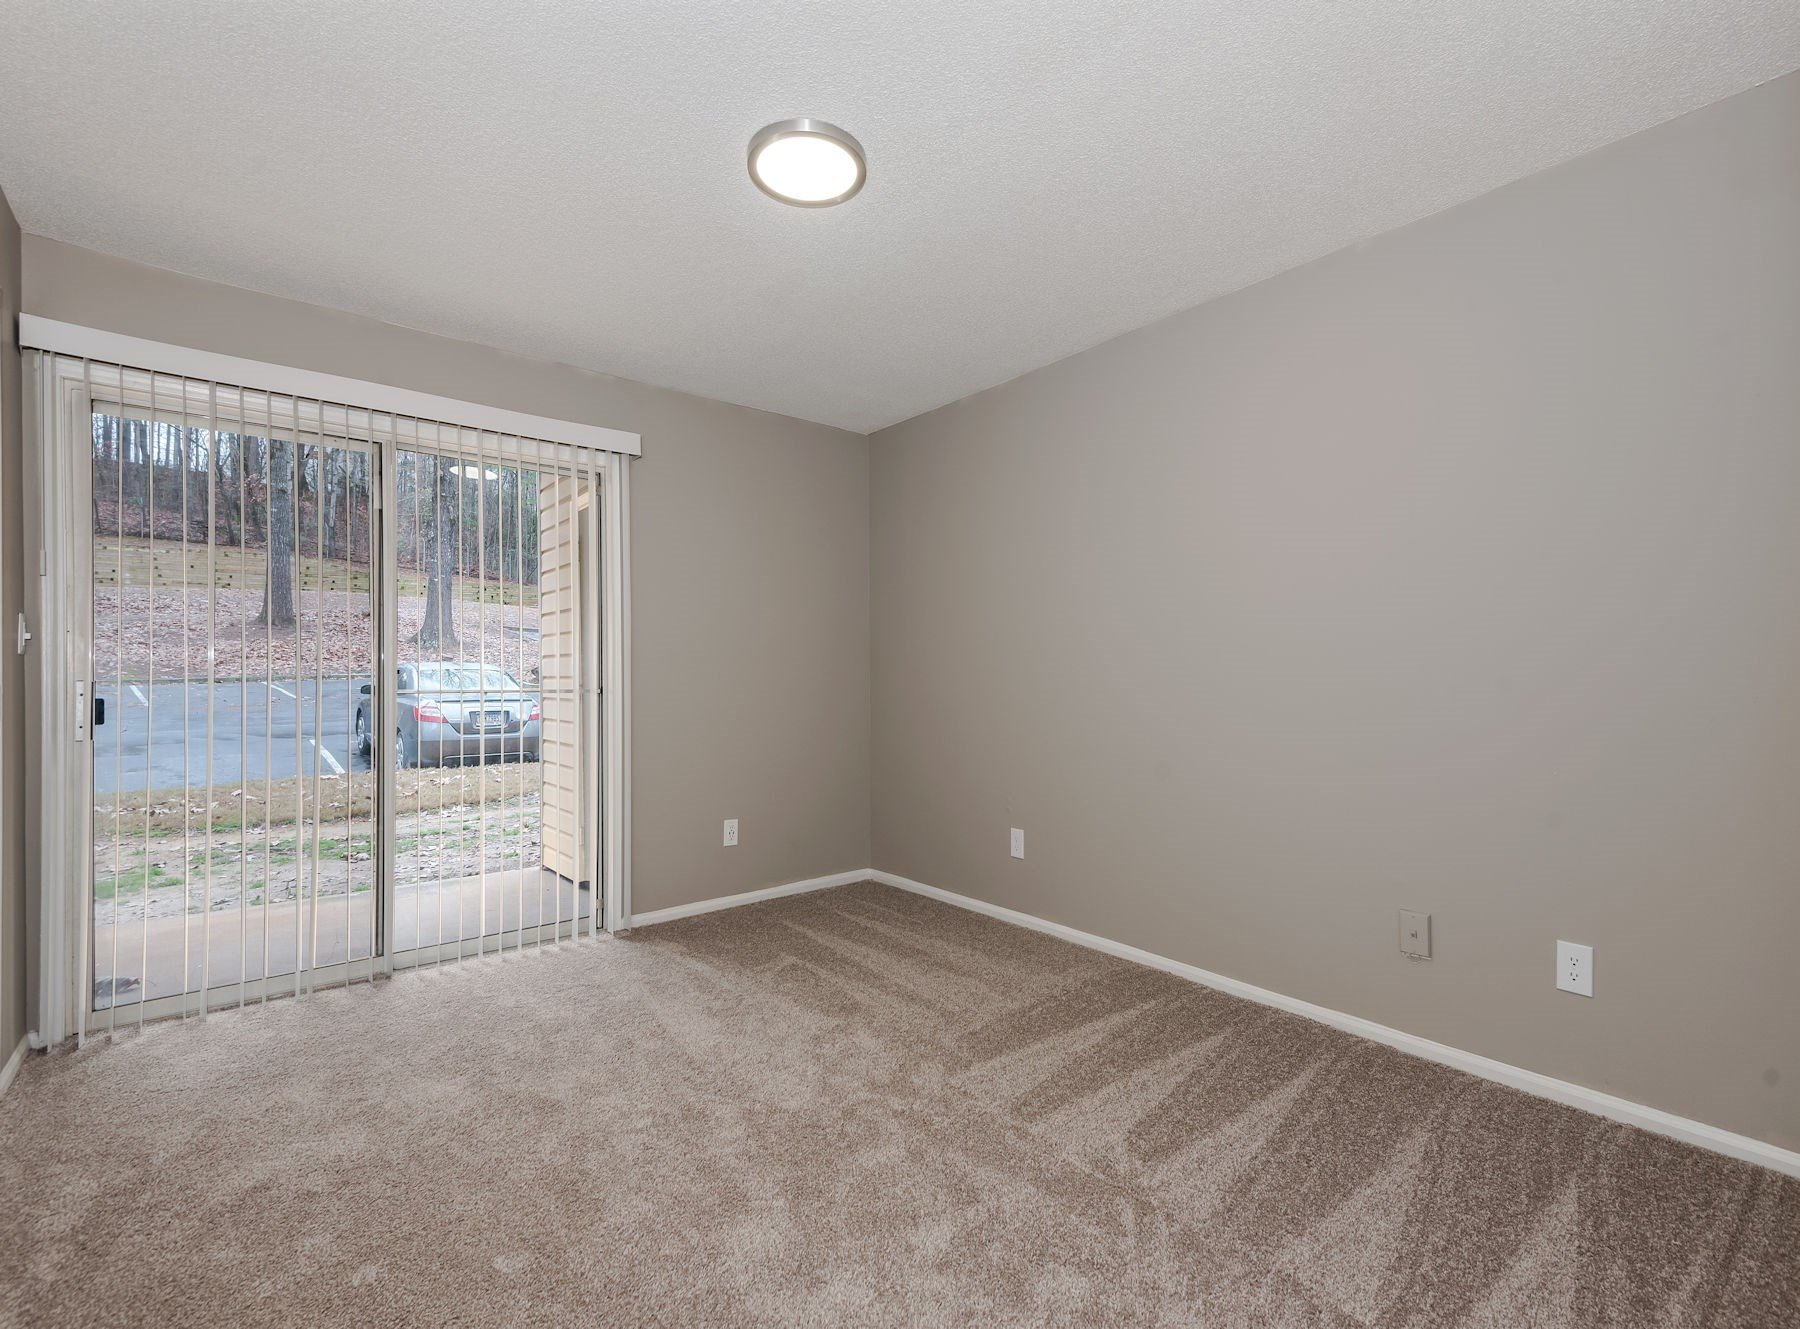 Model Living Area With Carpet And Large Window